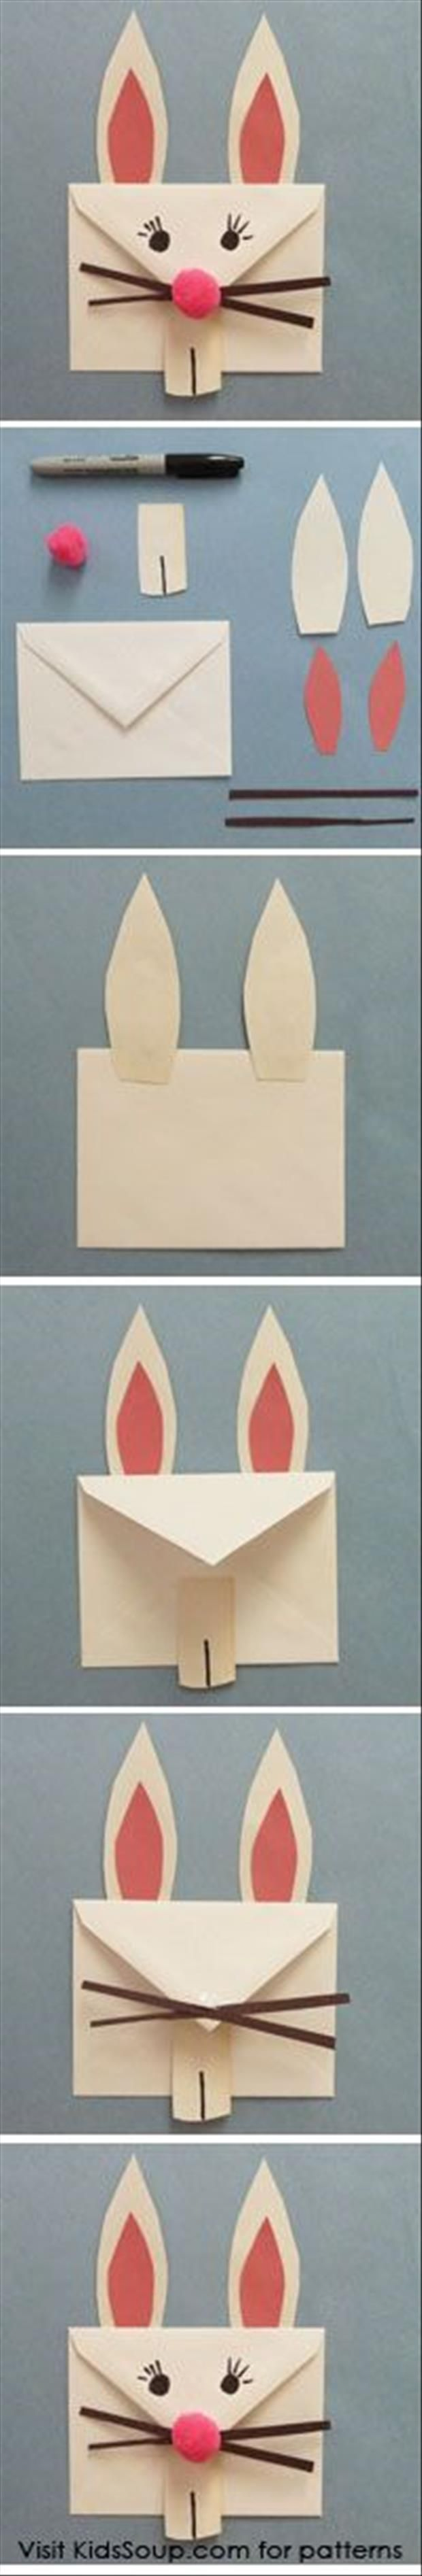 Fun easter craft ideas 32 pics buste pinterest easter crafts diy bunny envelope diy easy crafts diy ideas diy crafts do it yourself diy art diy tips diy images do it yourself craft ideas diy ideas images kids crafts solutioingenieria Gallery